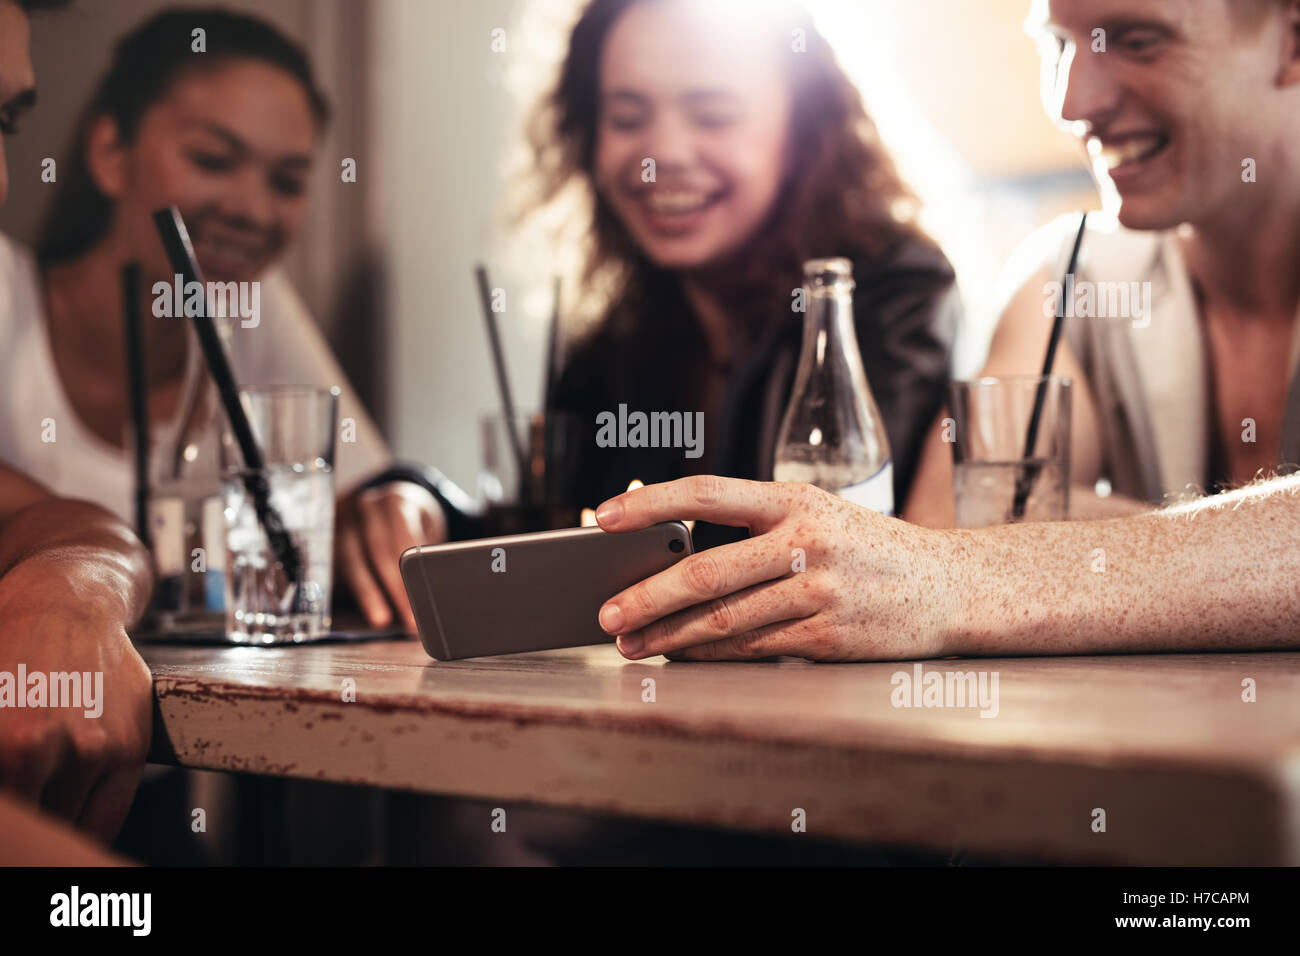 Group of friends sitting in a bar and watching a funny video on mobile phone, focus on mobile phone in man hand. - Stock Image